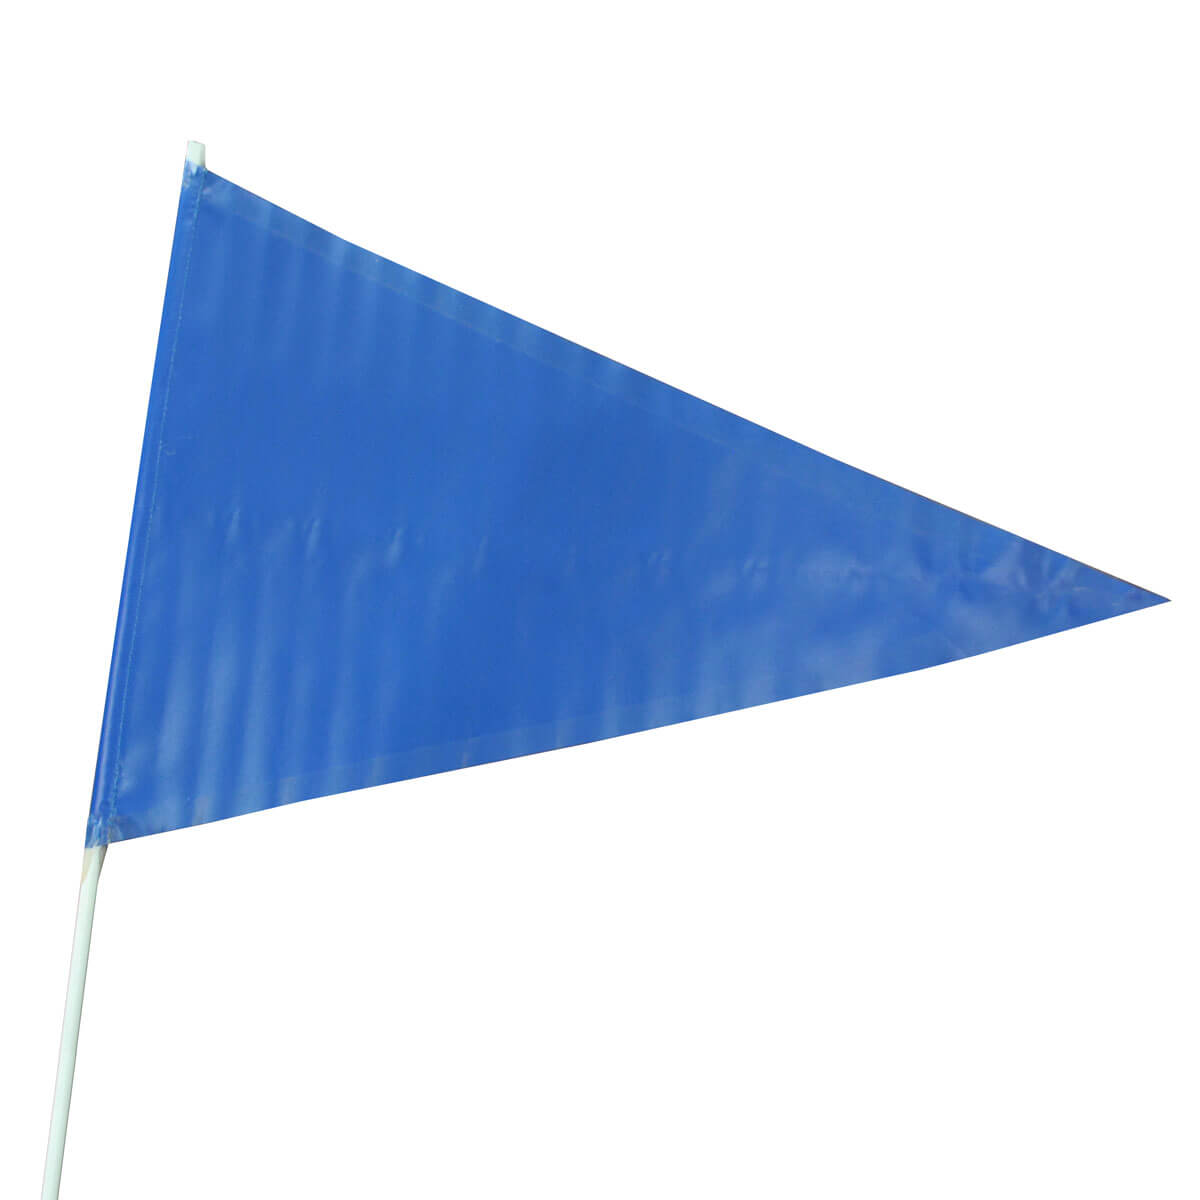 bicycle safety flag kits   choose your color fbpp0000013340